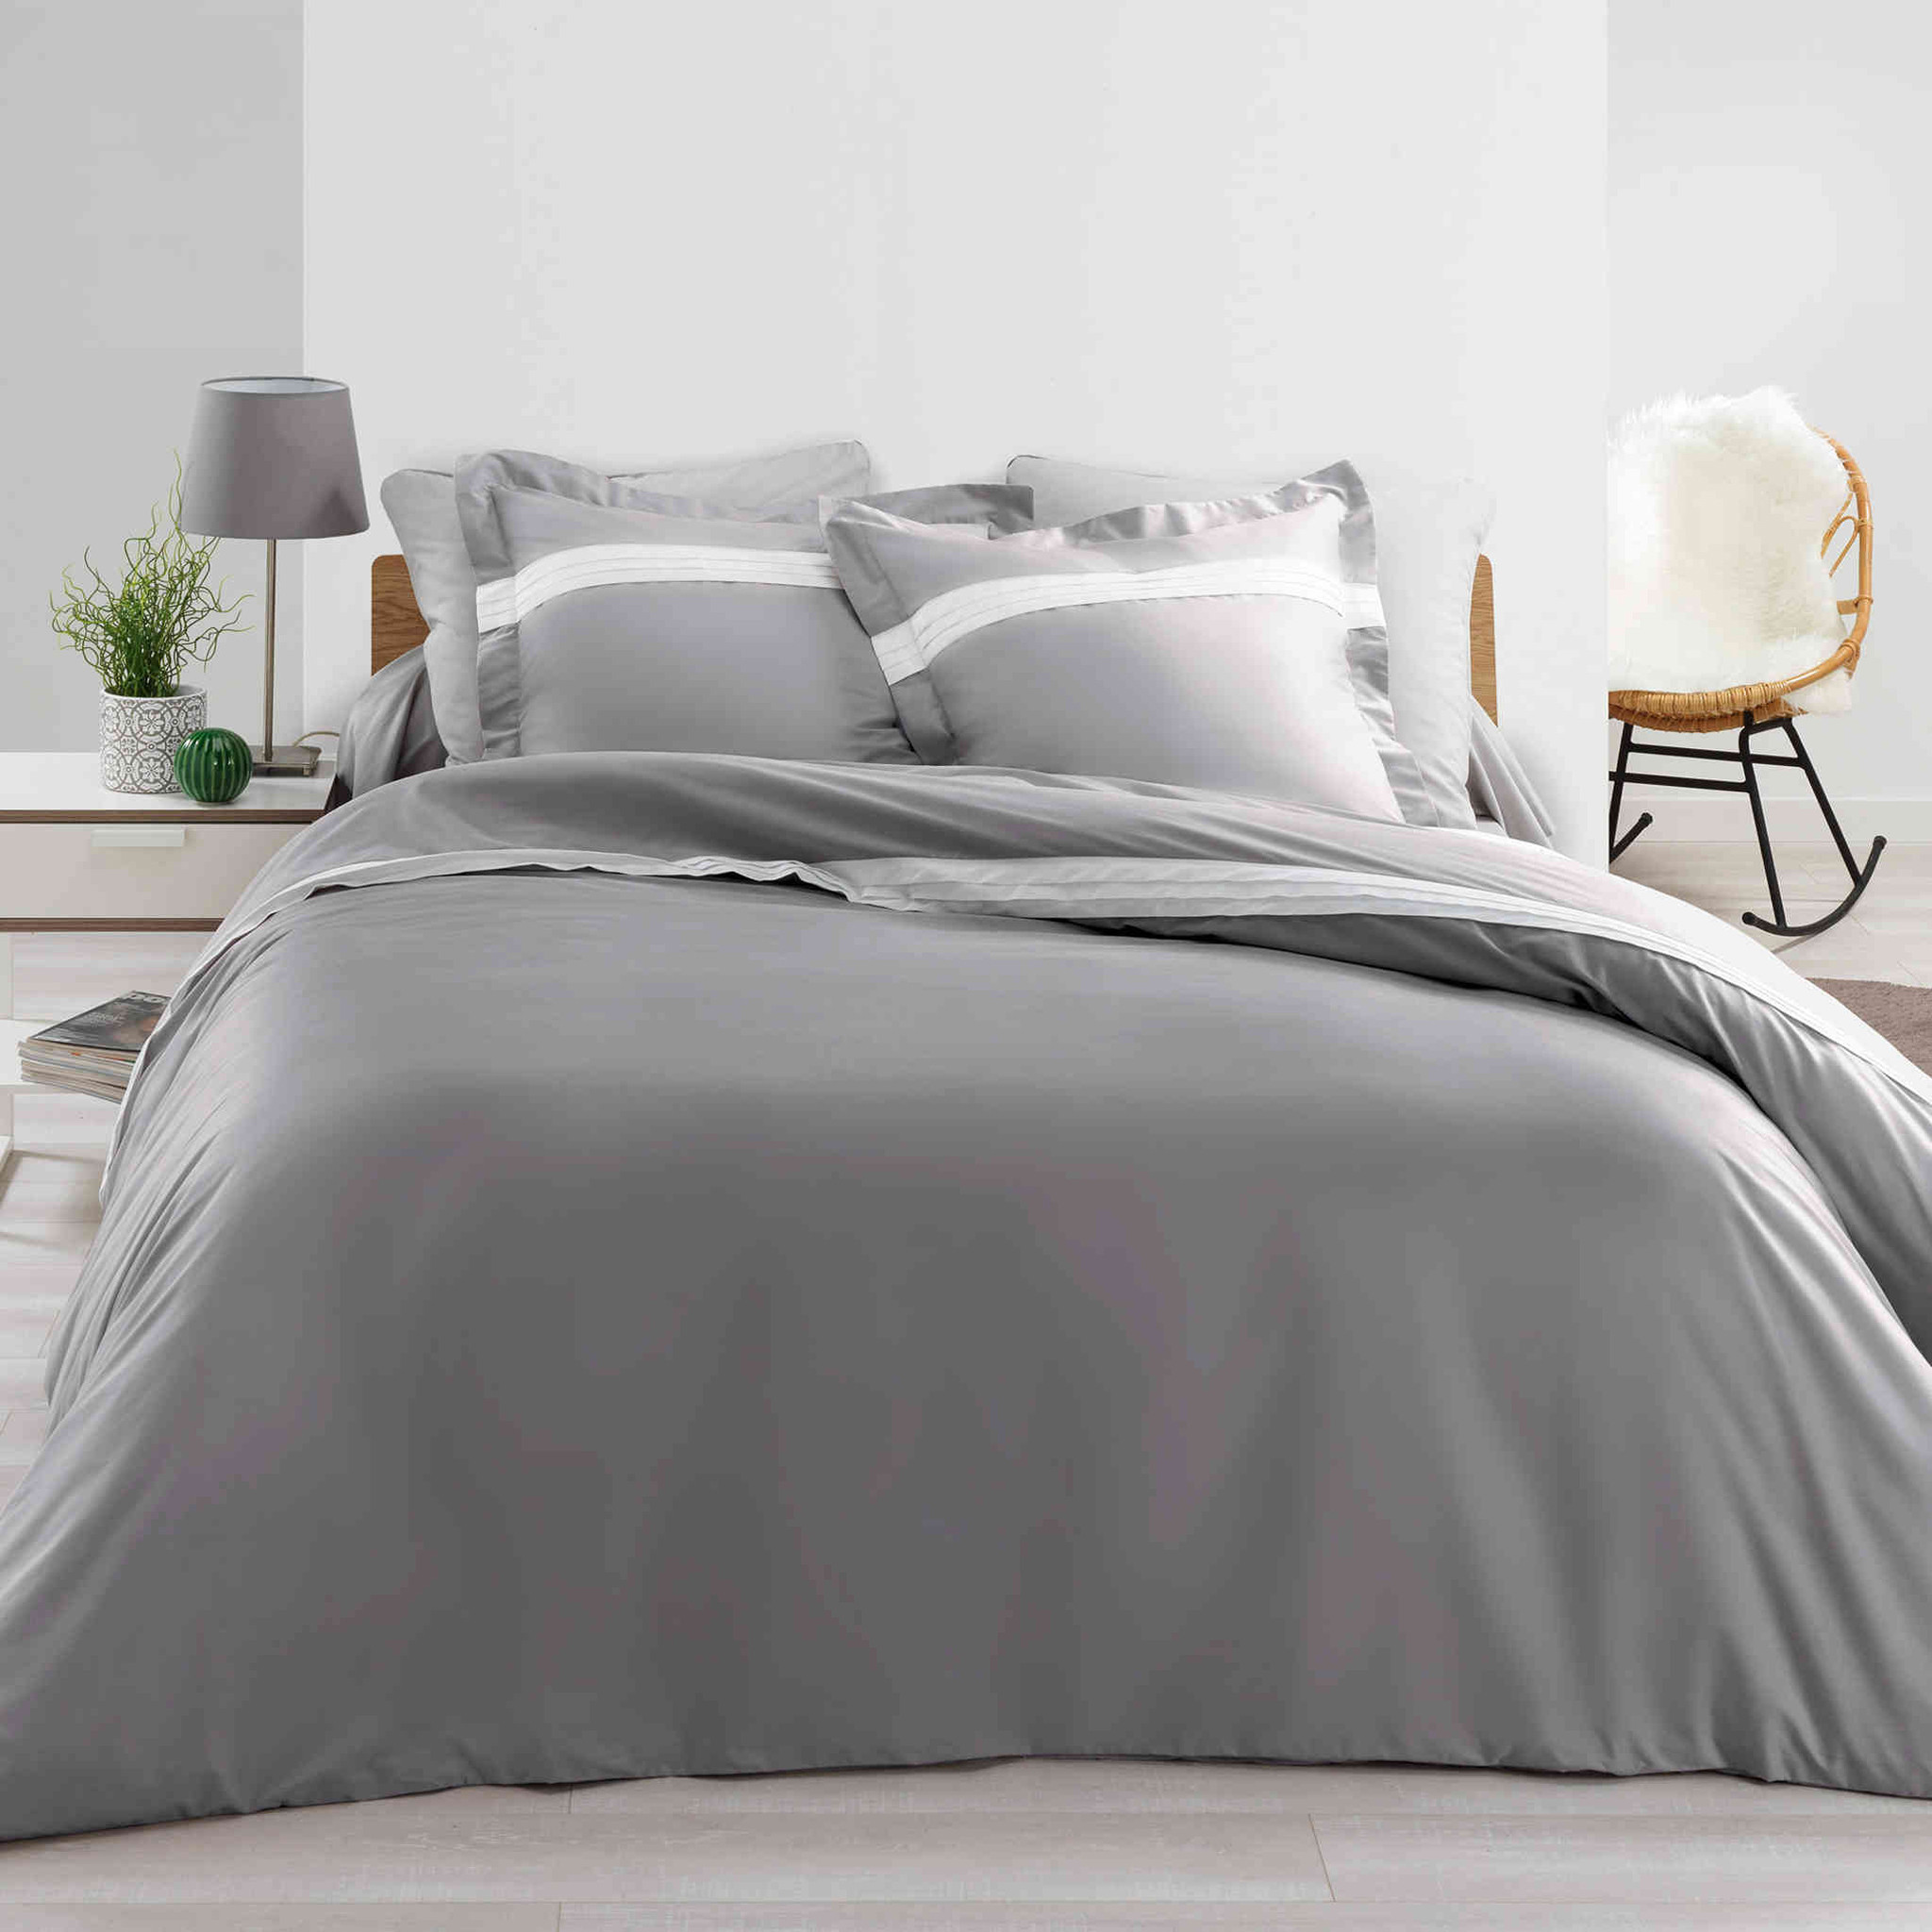 Parure de lit percale Astoria anthracite